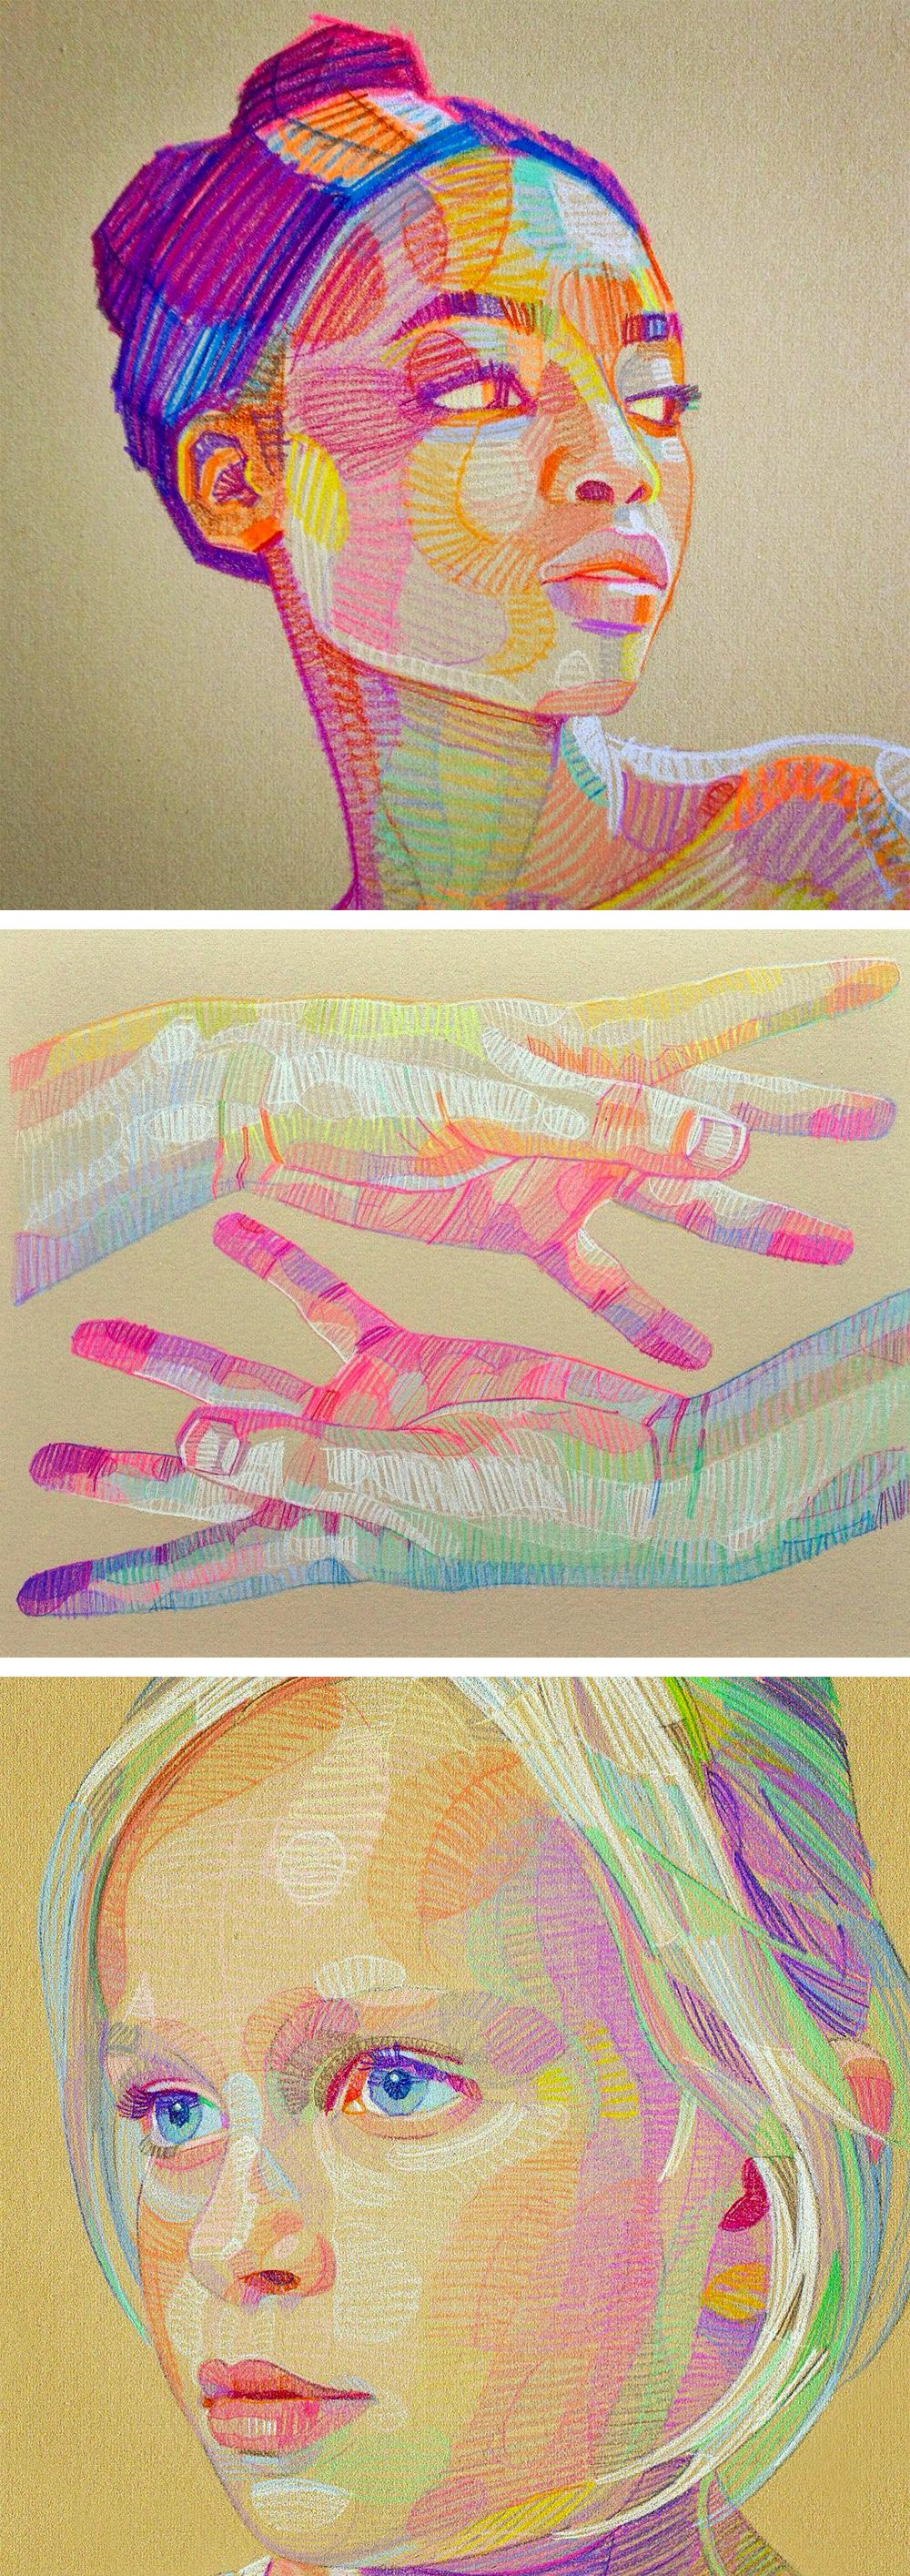 Prismatic Sketches Of Hands And Faces By Lui Ferreyra Art